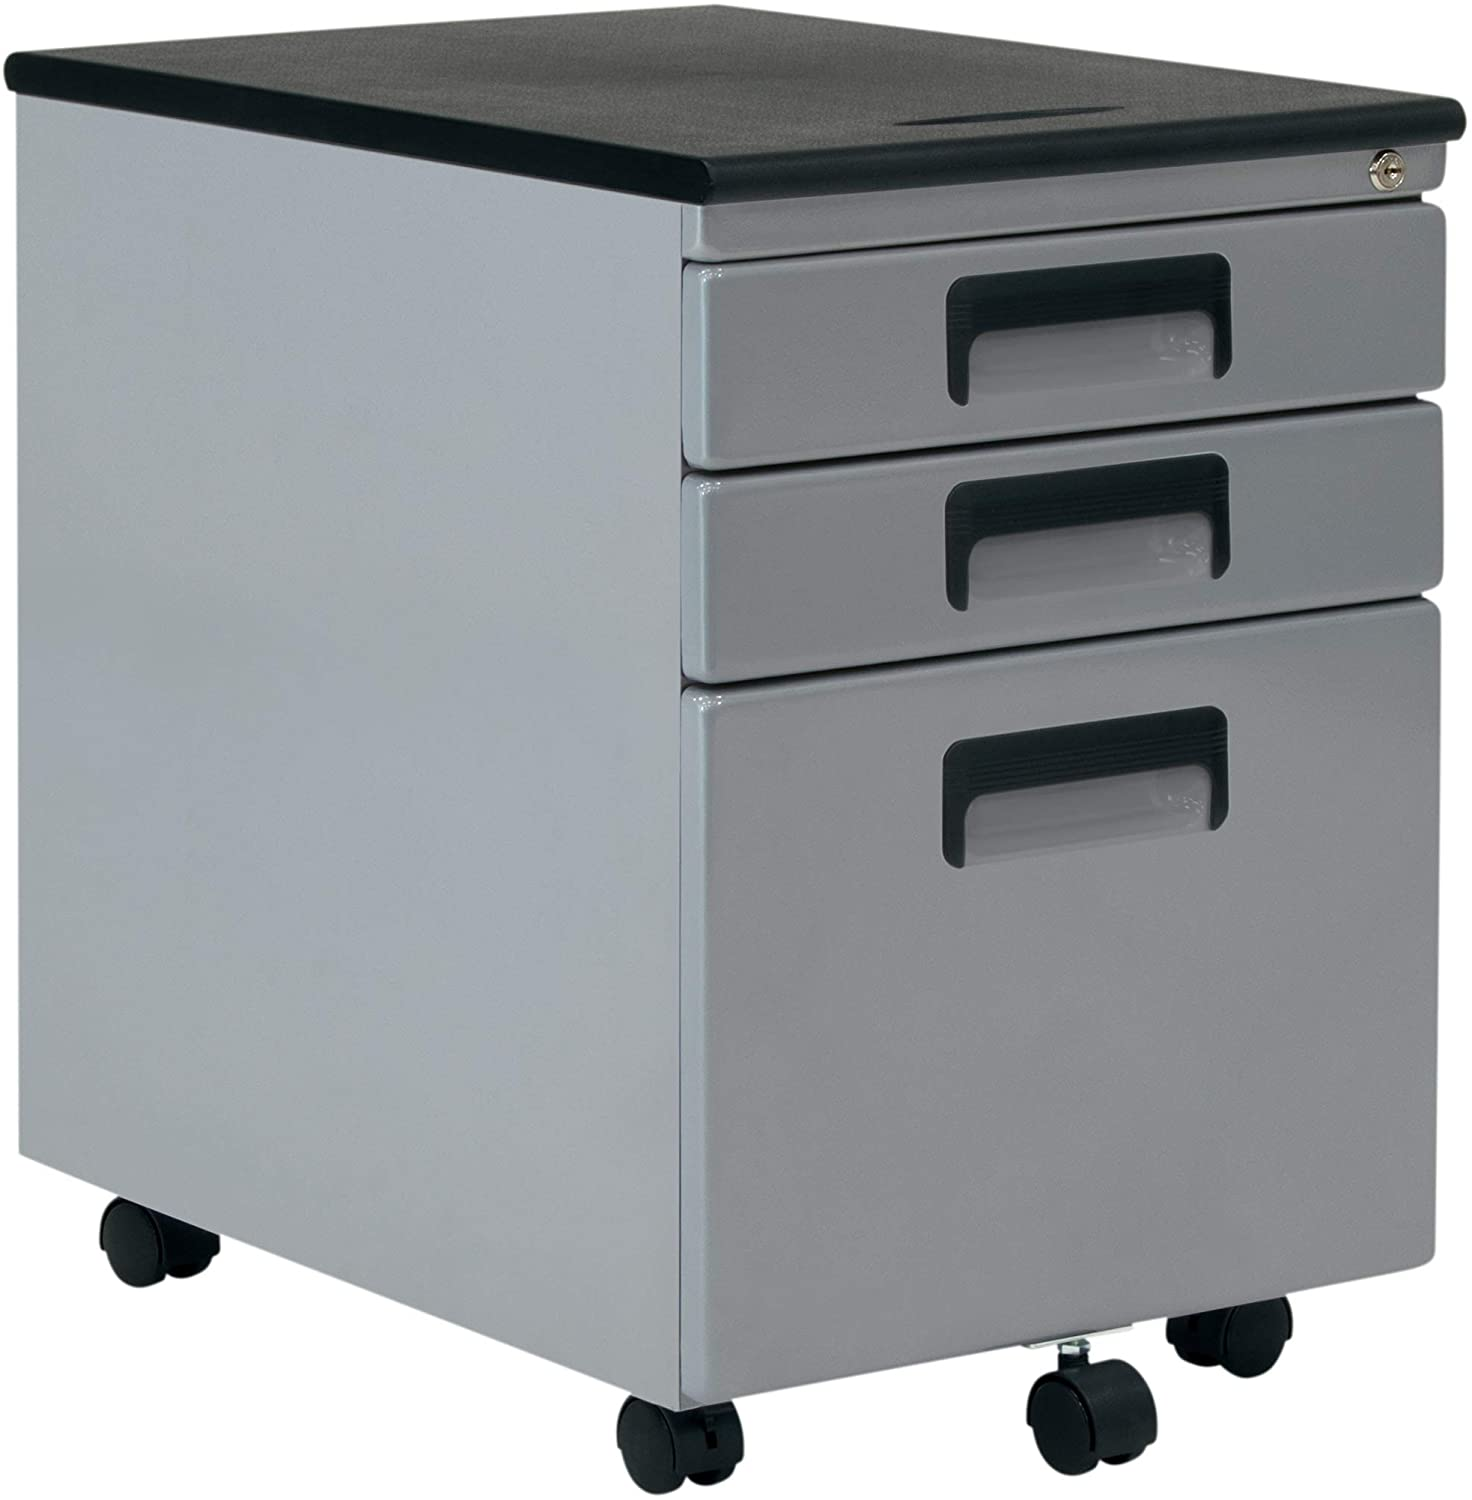 Craft & Hobby Essentials Silver Metal 3, Vertical, Mobile Filing Cabinet 15.75\ W x 22\ D, Craft Supply Storage with Locking Drawers